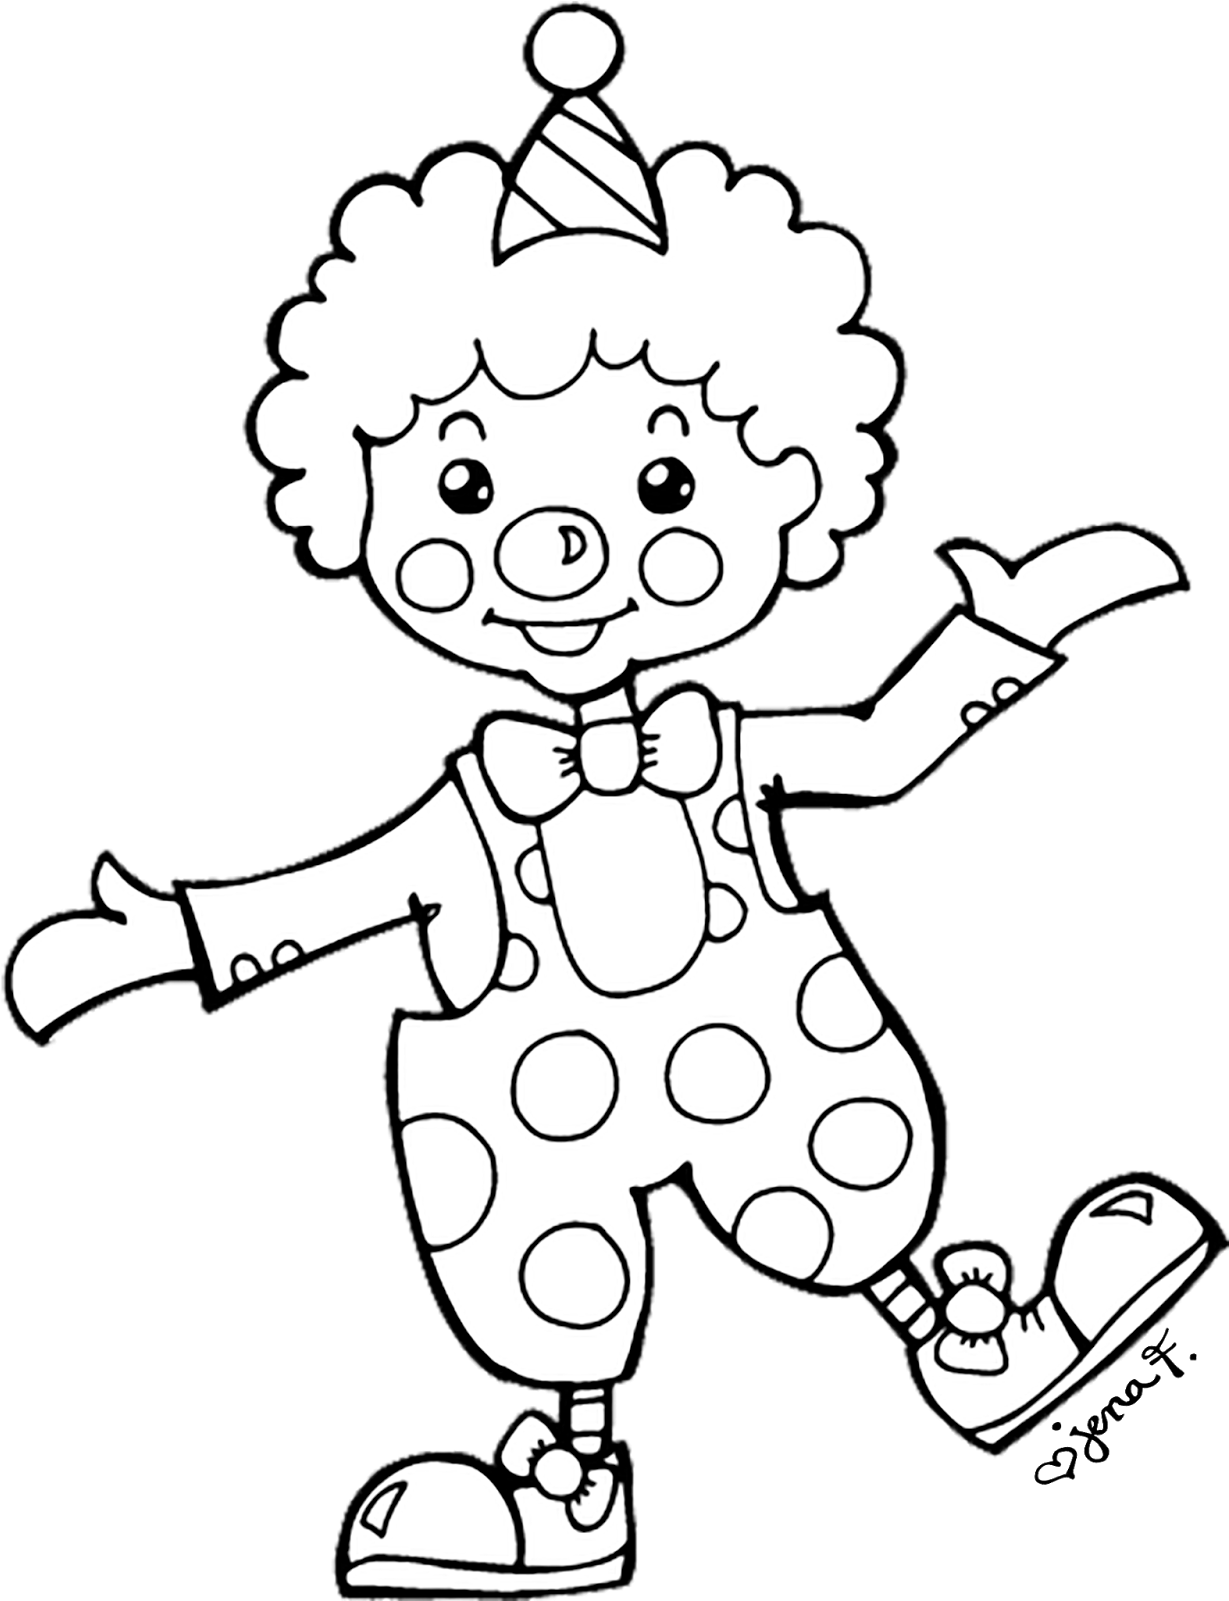 Clown and circus clipart black and white jpg free download Download HD Circus Clown Clipart Black And White - Clip Art Black ... jpg free download